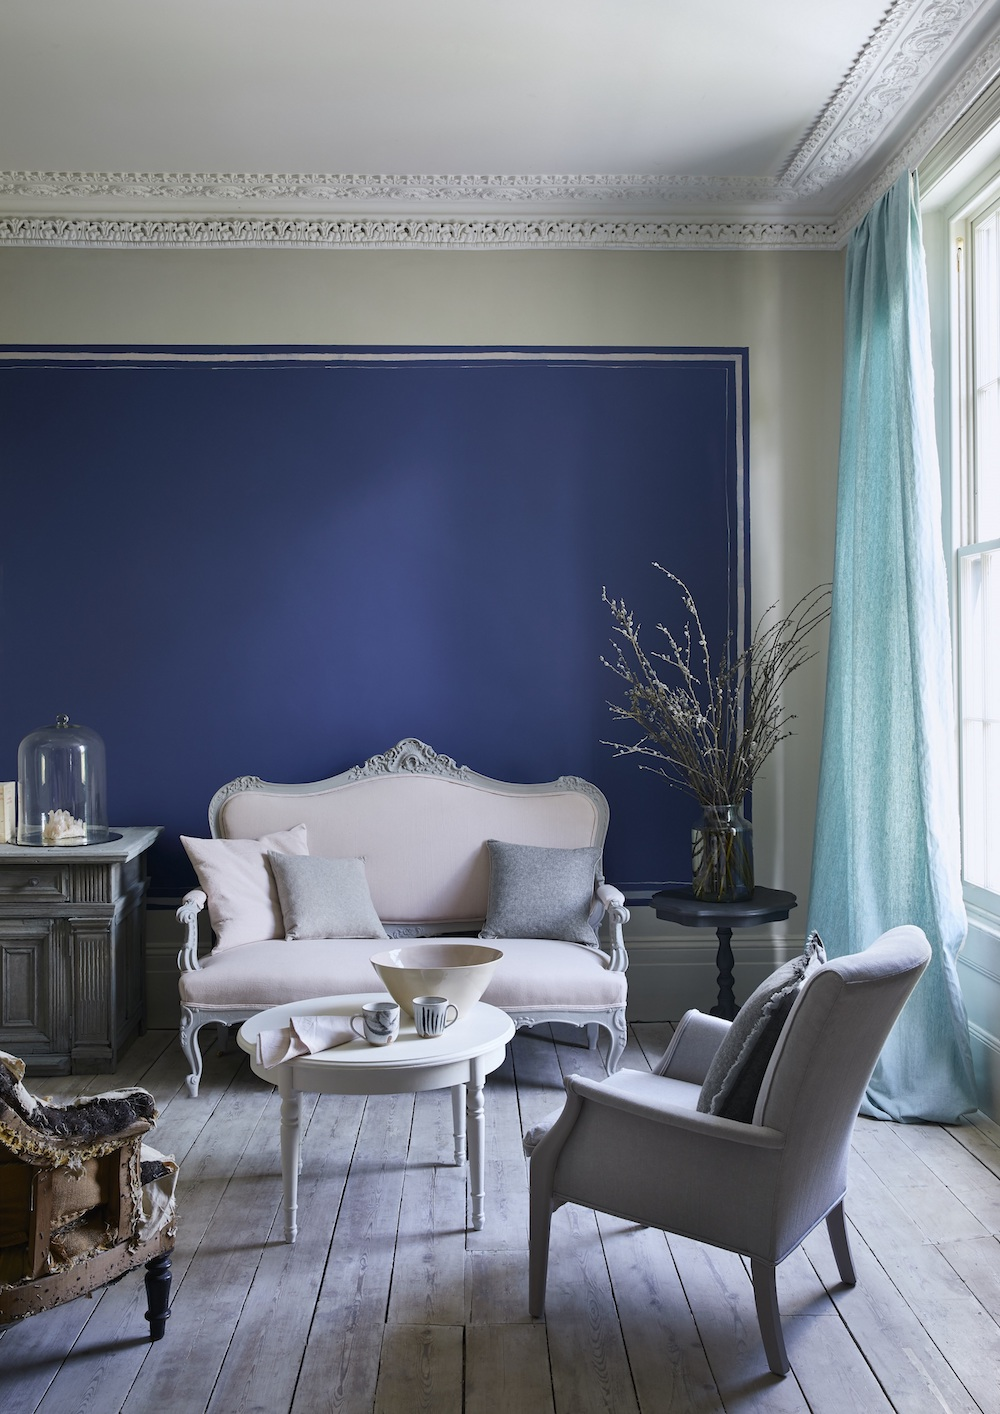 Annie Sloan - Living room - Wall Paint in Napoleonic Blue, Linen Union fabrics -  Lifestyle - Portrait (1).jpg